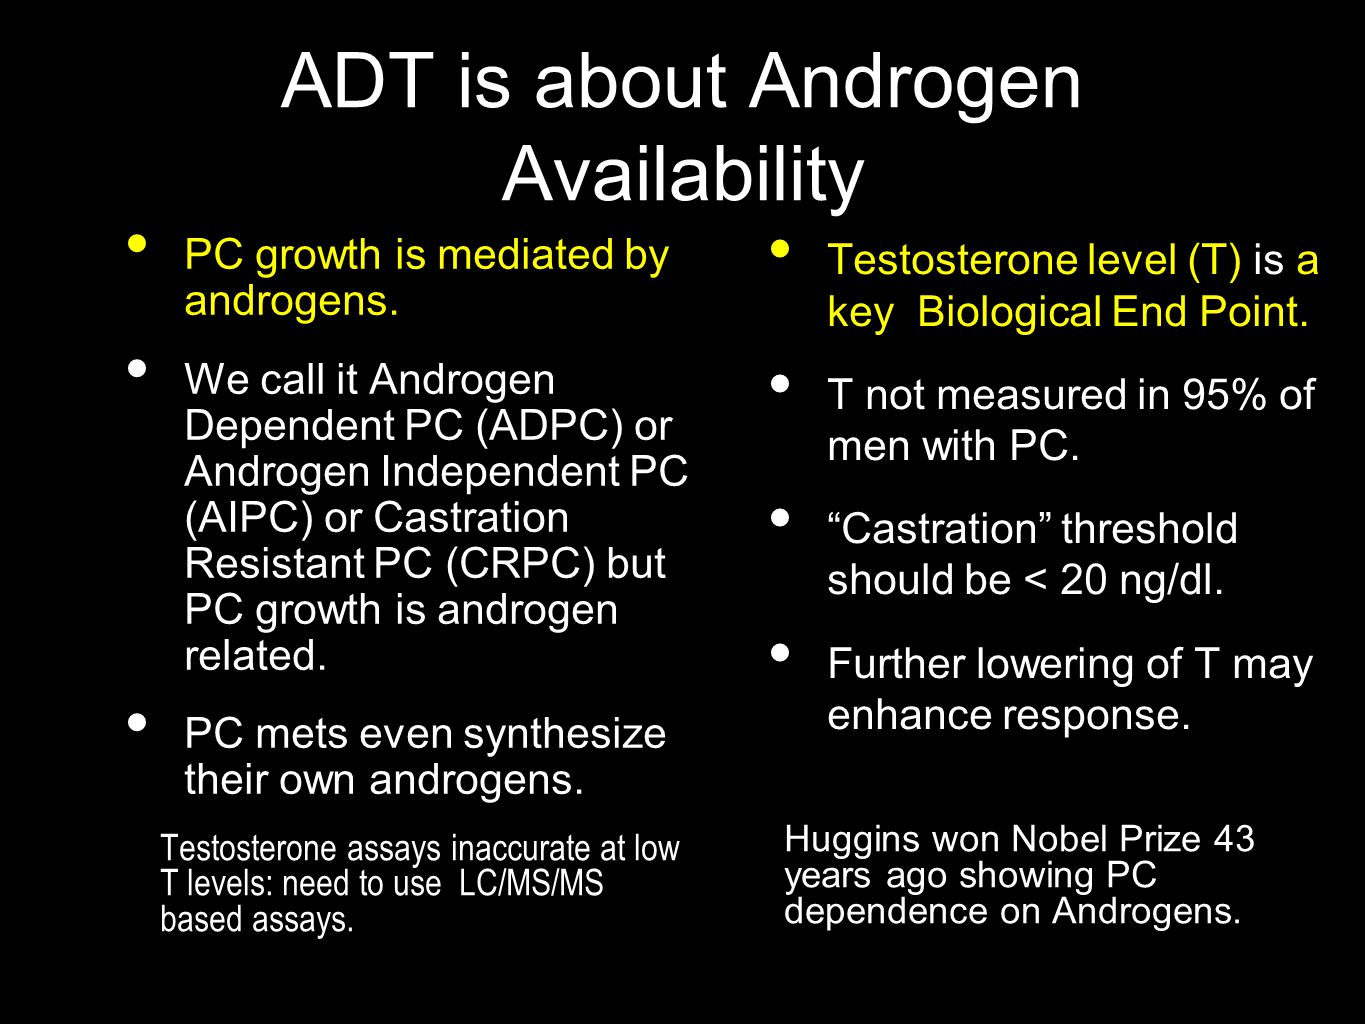 ADT is about Androgen Availability Huggins won Nobel Prize 43 years ago showing PC dependence on Androgens.